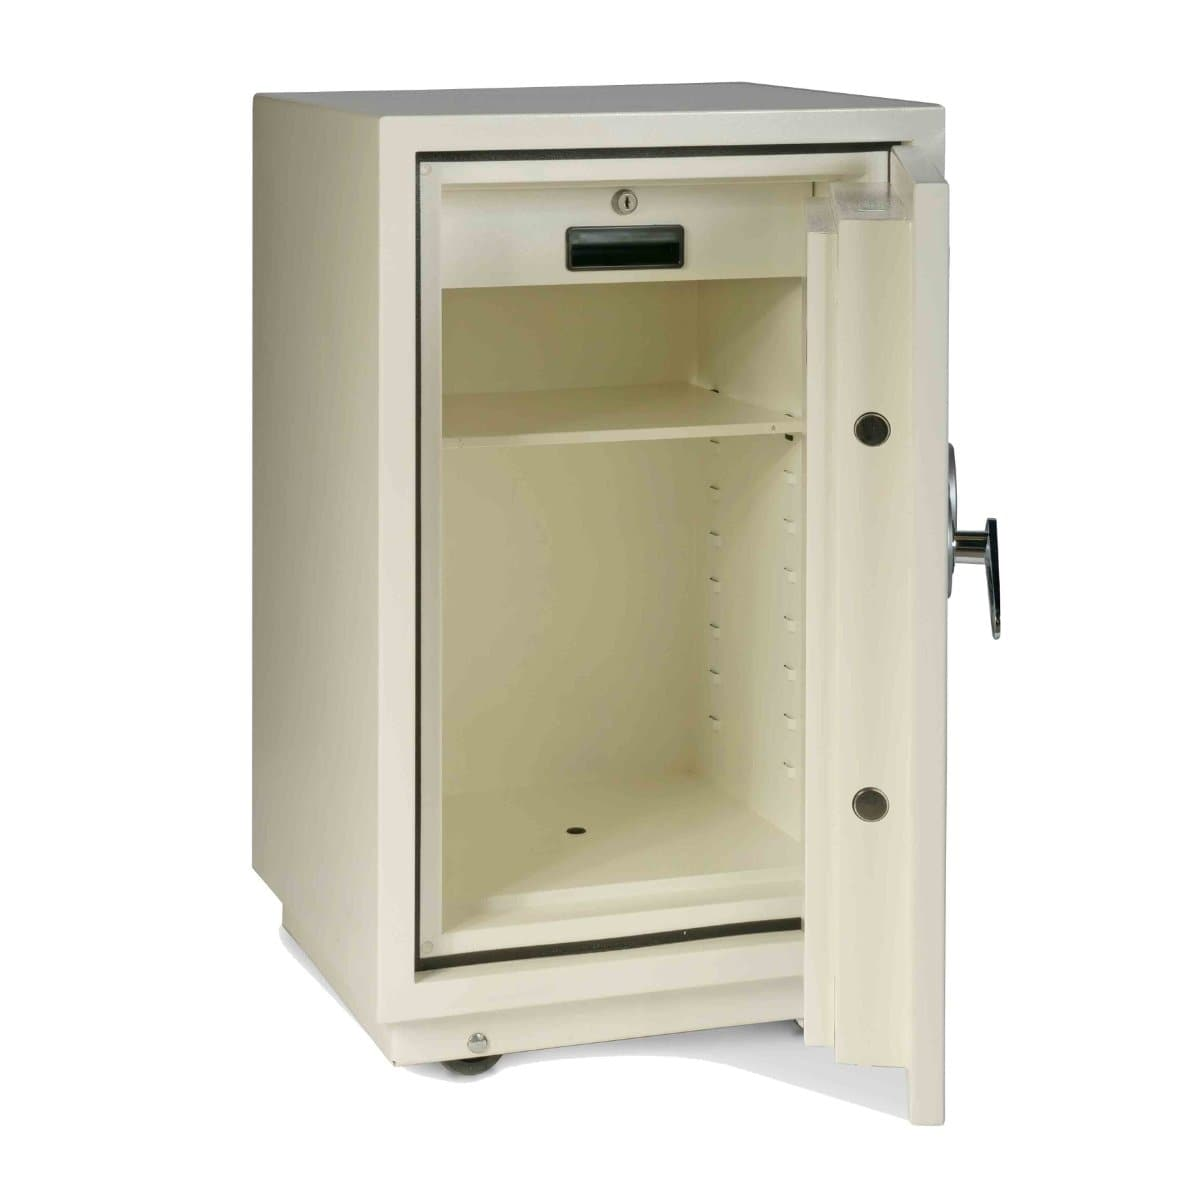 Valberg FRS-75 EL Fire Resistant Safe, Digital & Key Lock, White